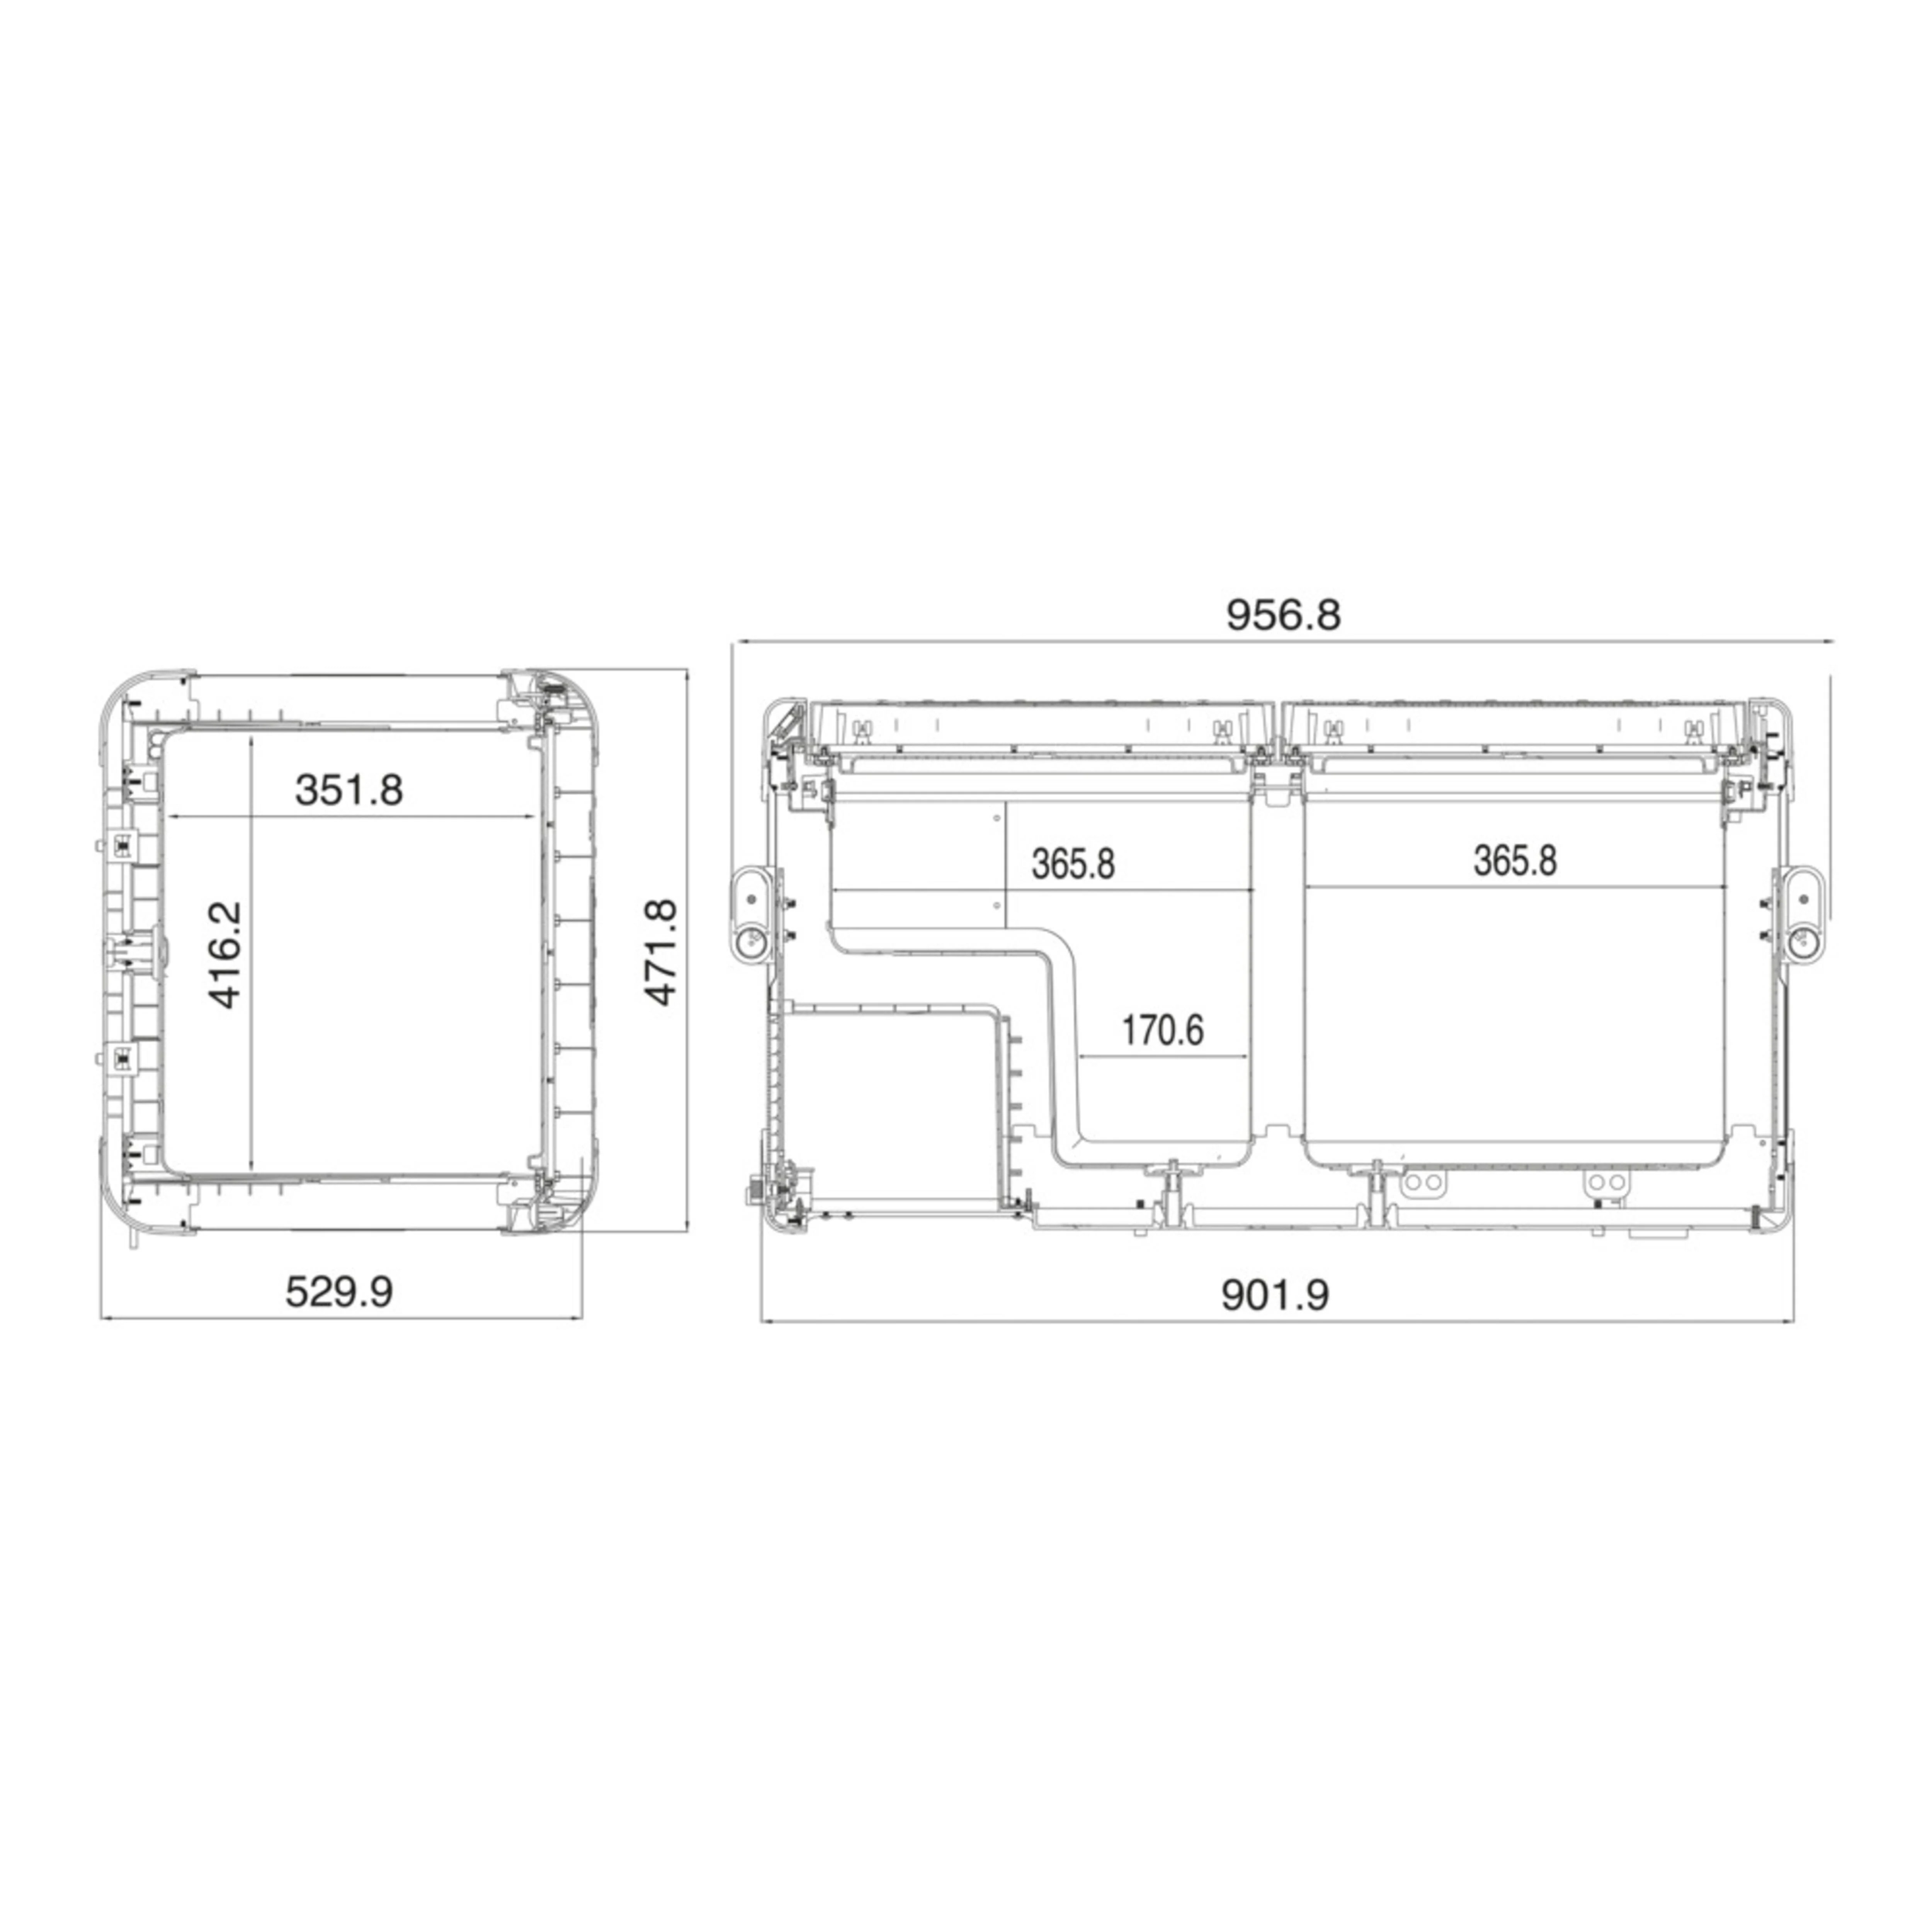 small resolution of support for dometic waeco cfx 95dzw dometic dometic wire diagrams microwave electrical wiring diagrams dometic waeco source norcold wiring diagram 01340